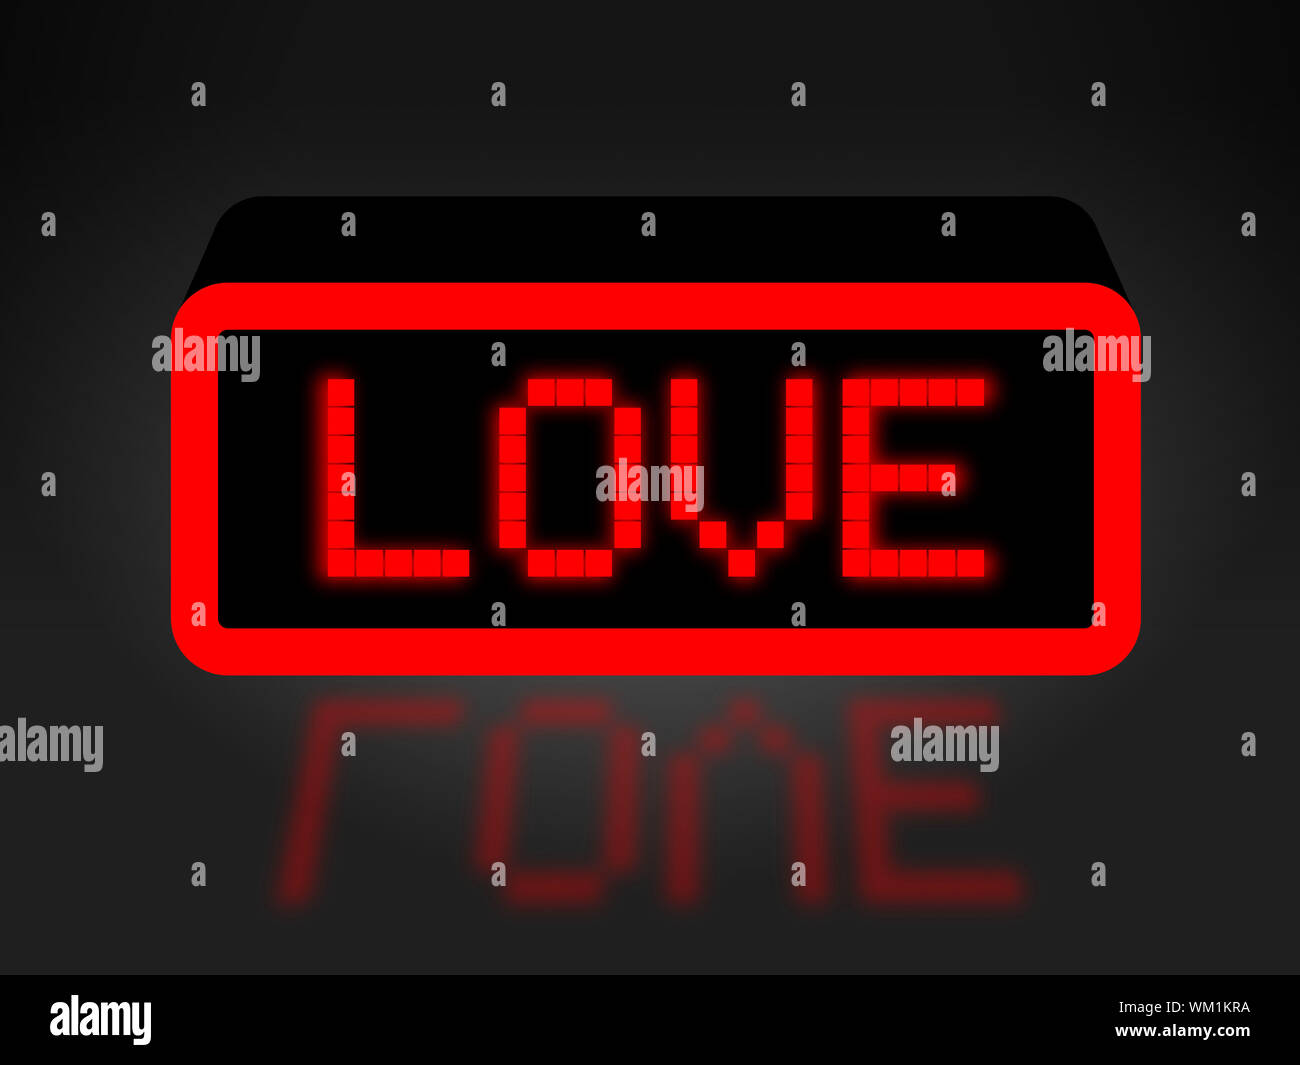 Love Neon Sign Indicating Boyfriend Display And Fondness Stock Photo